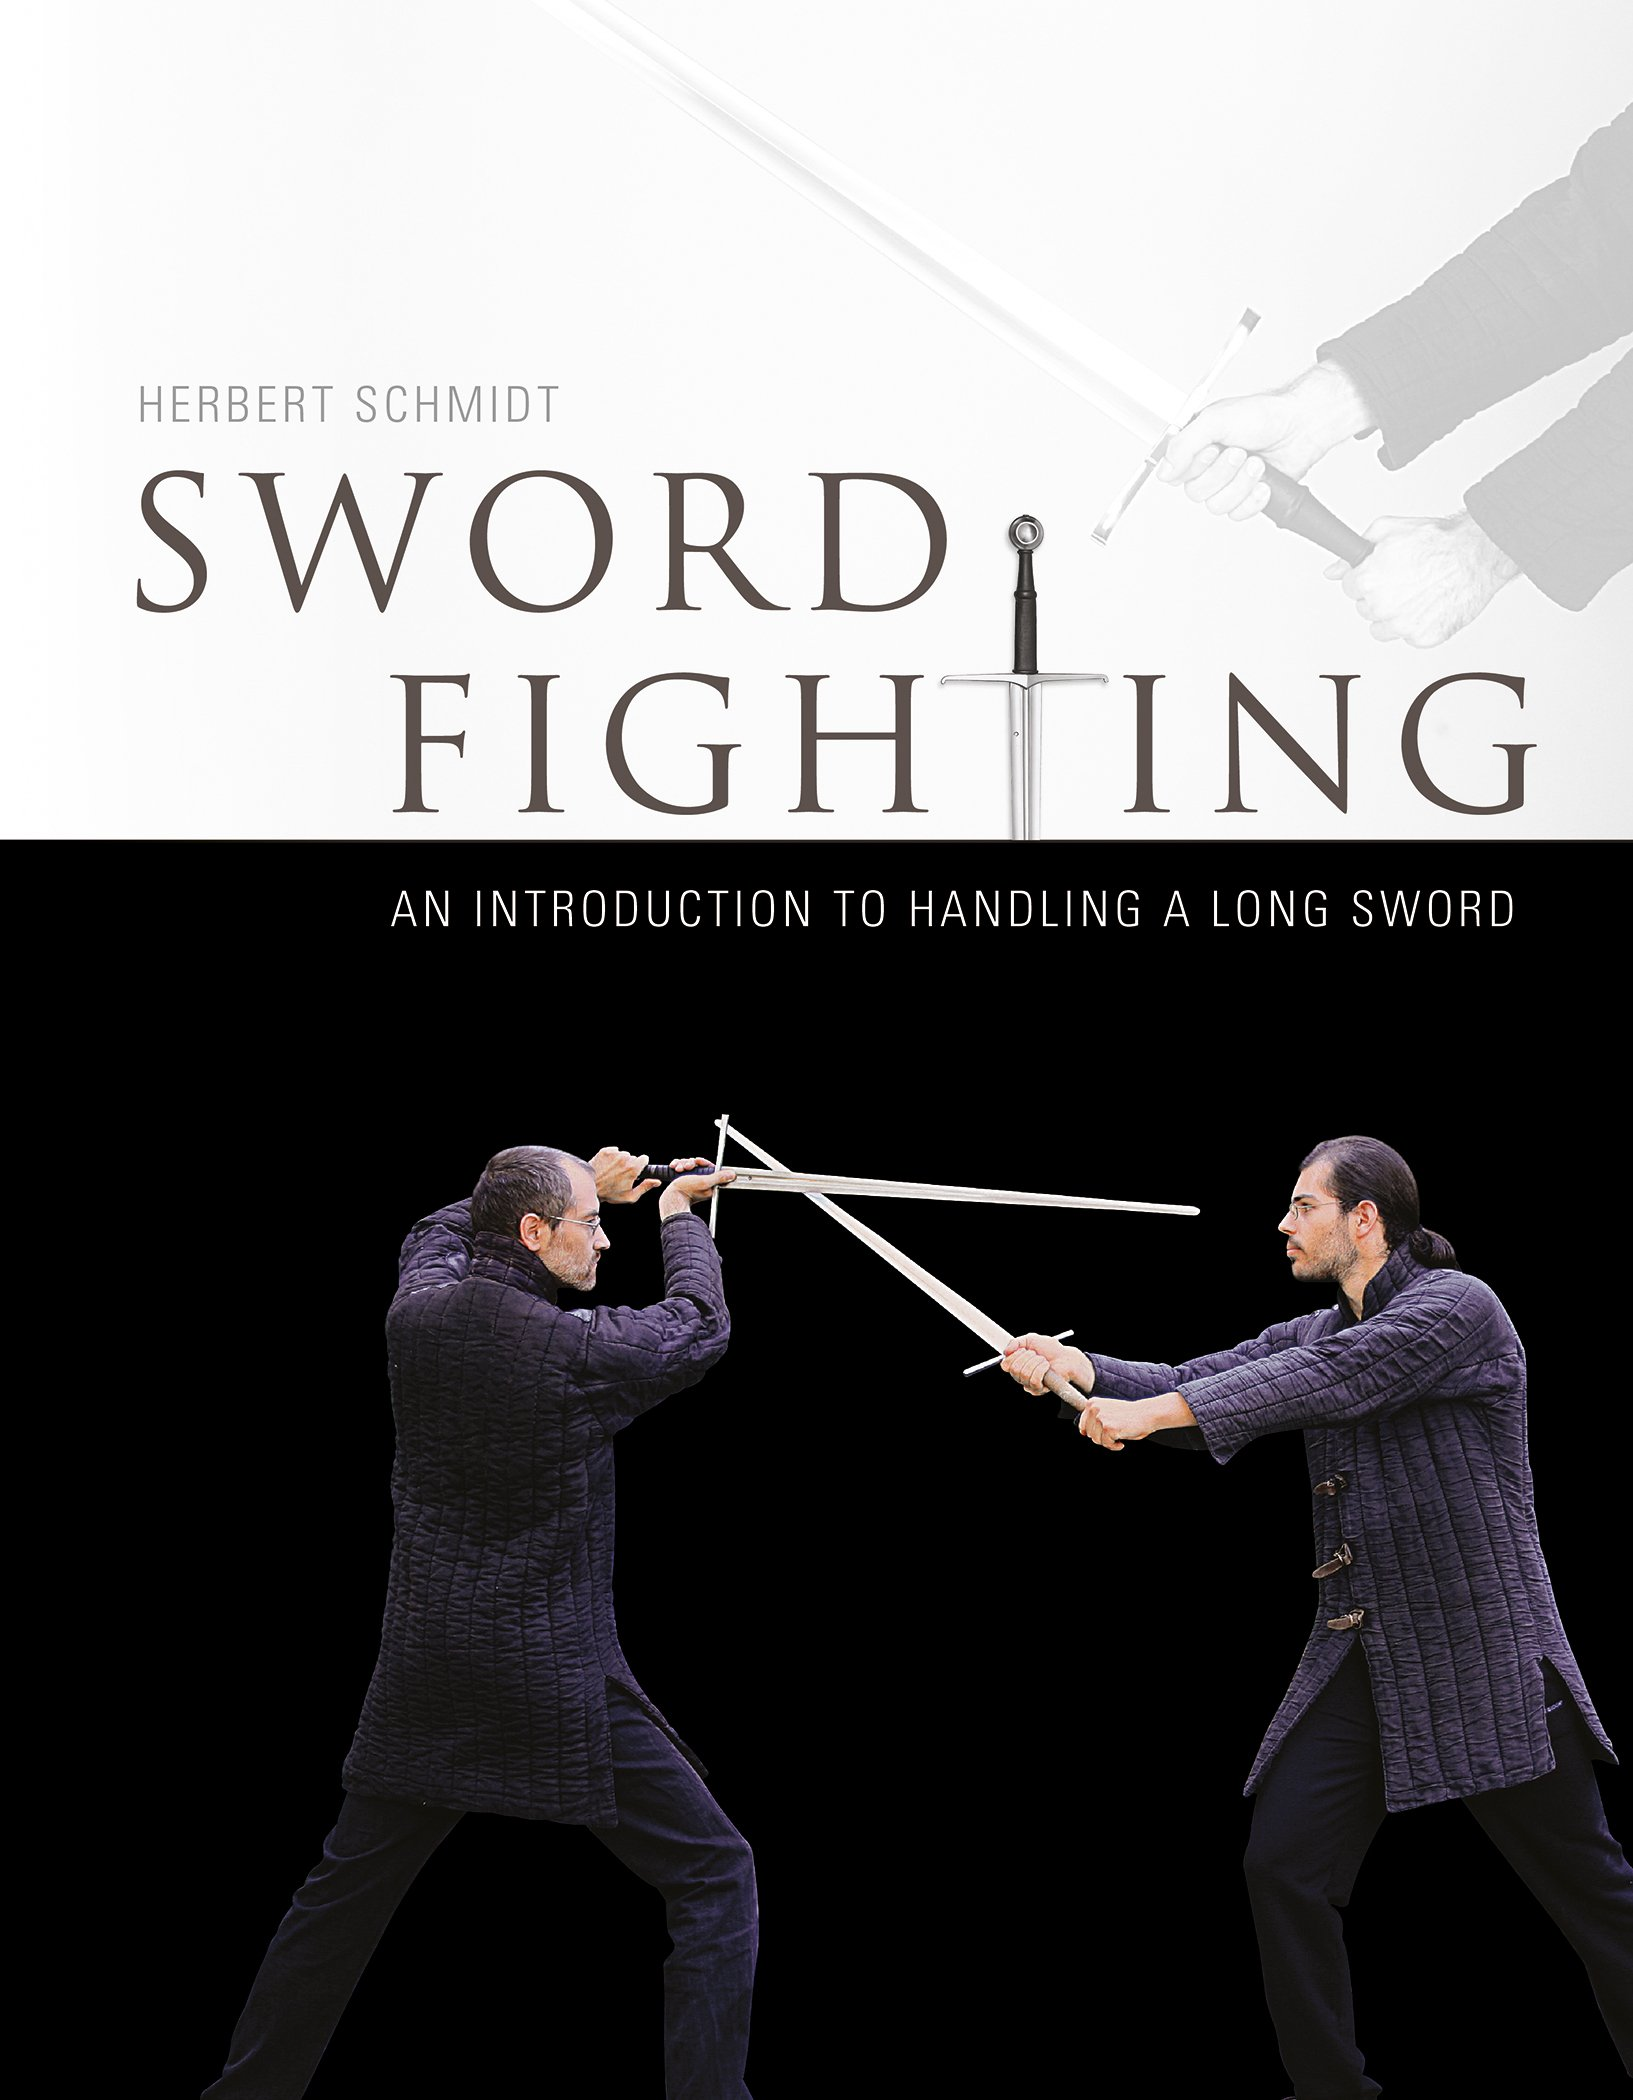 Sword Fighting: An Introduction to handling a Long Sword: Herbert